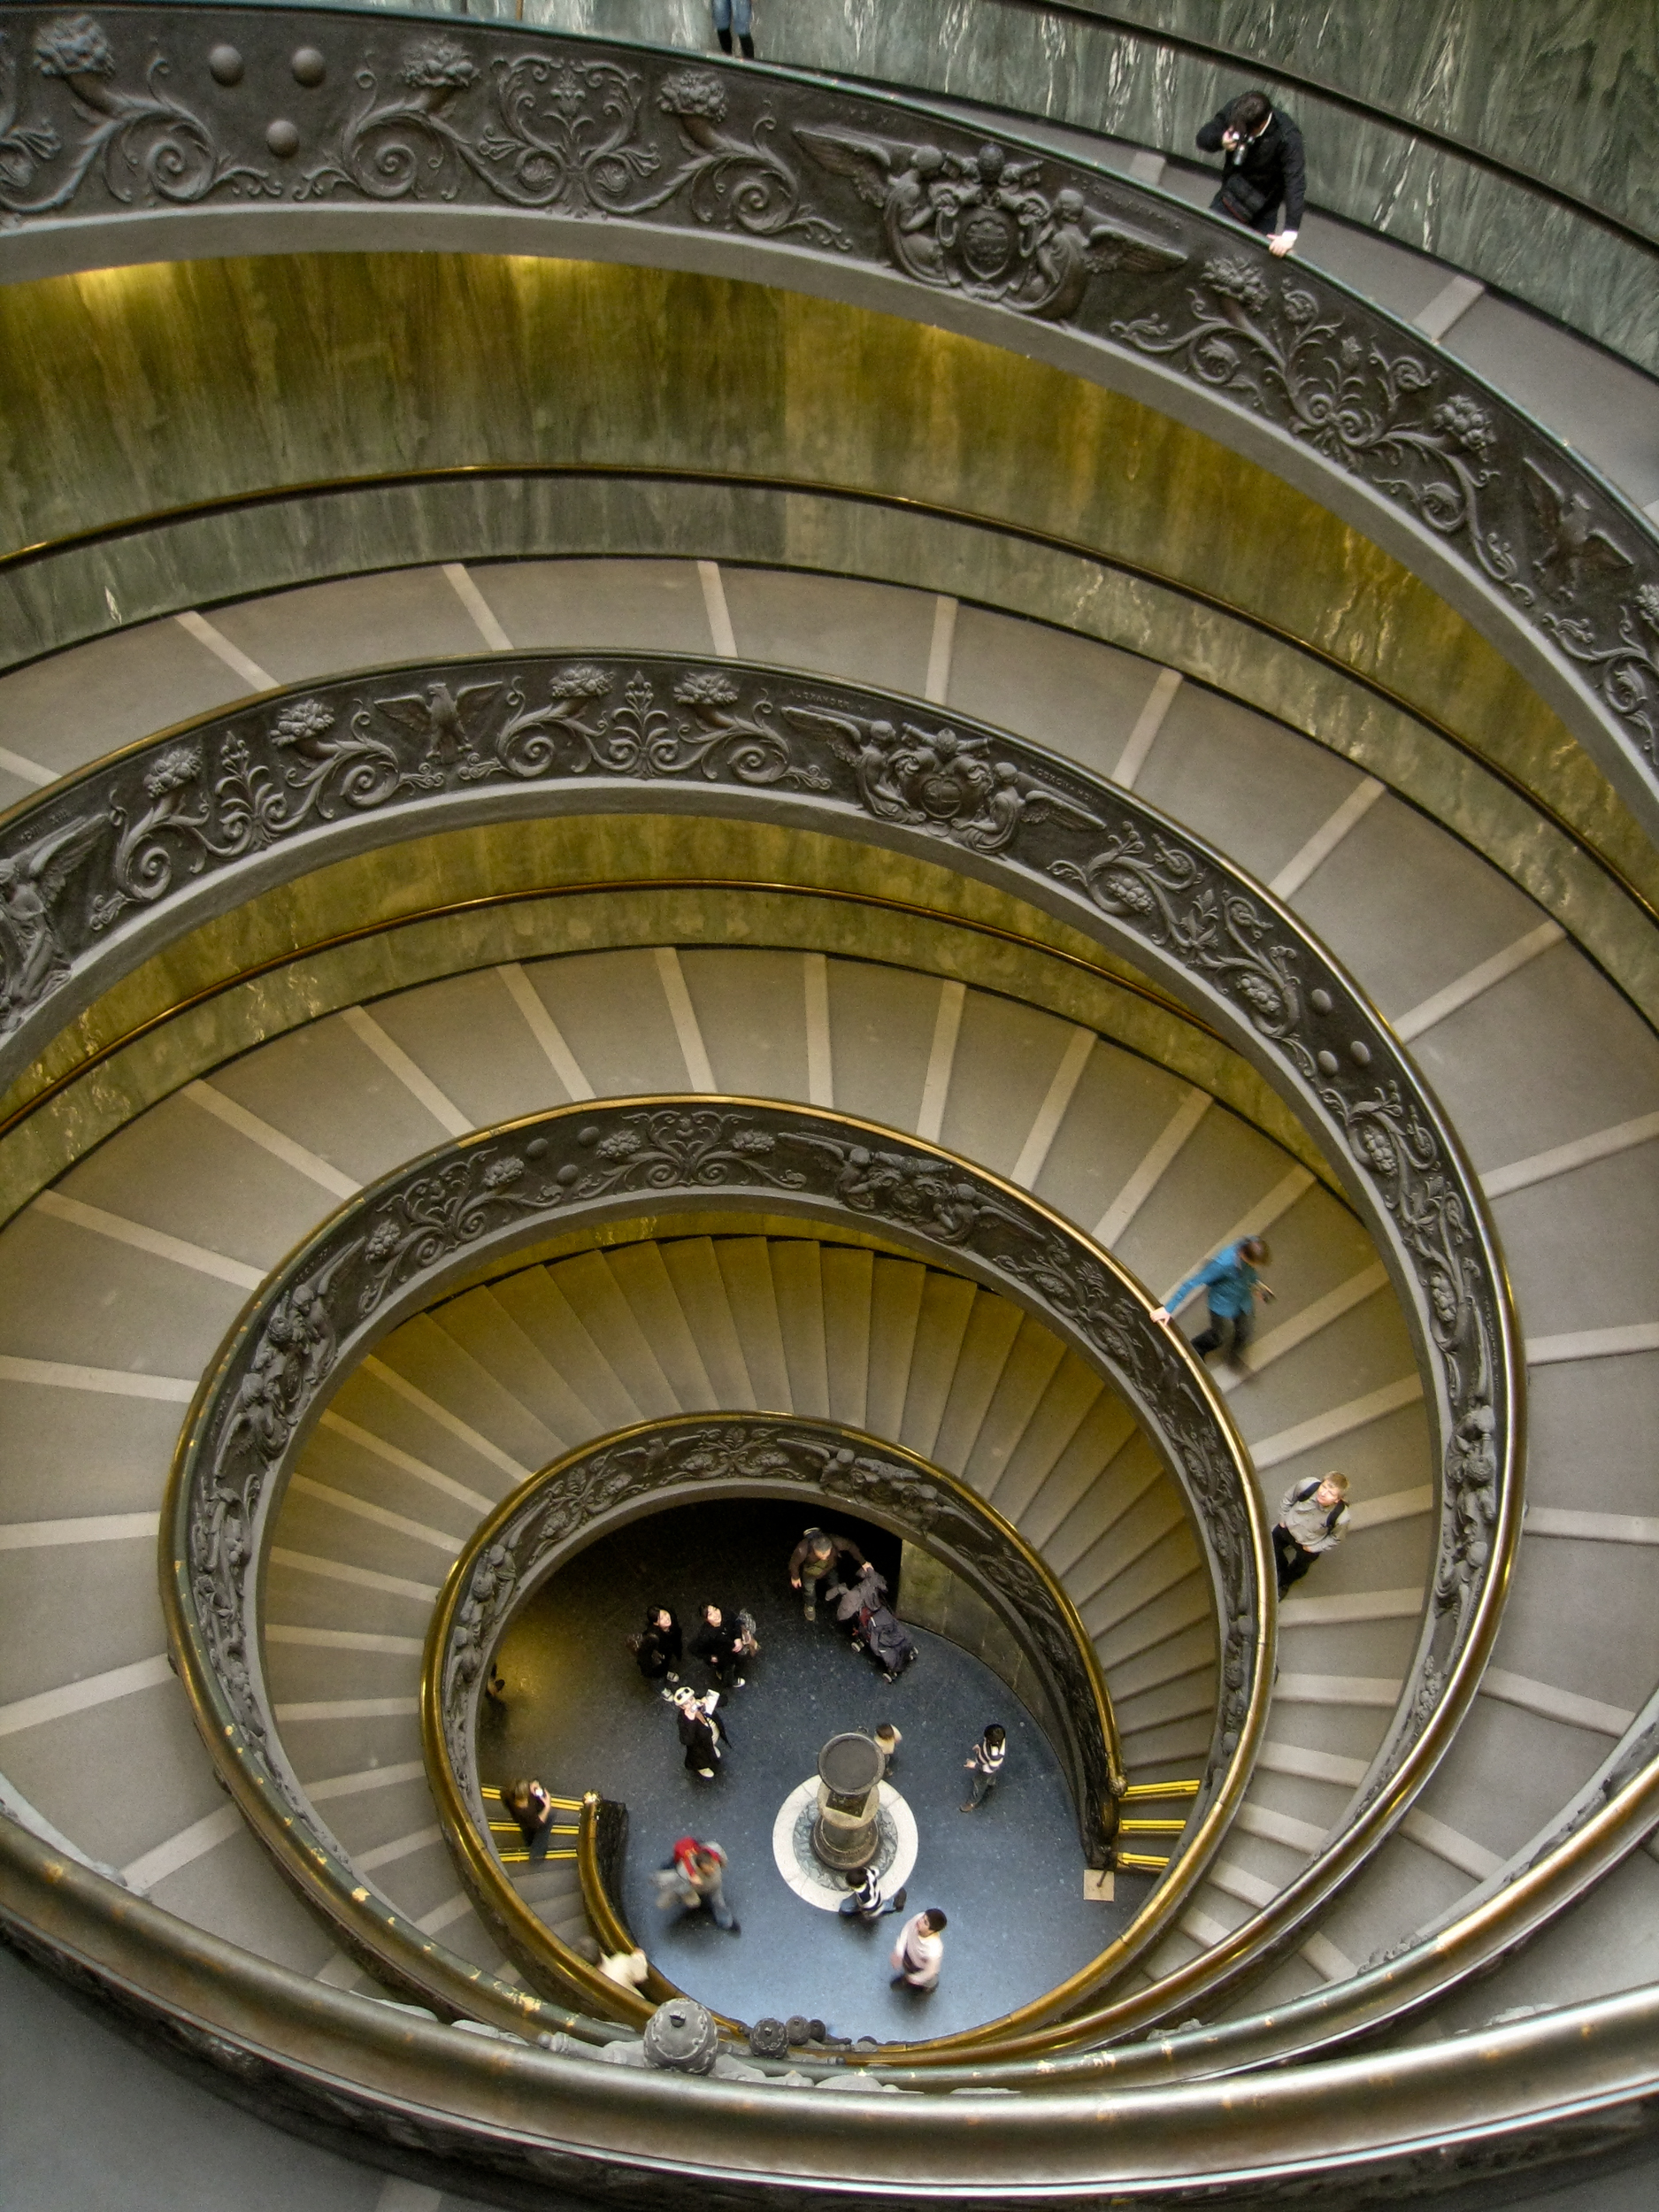 Vatican Stairs, The Vatican